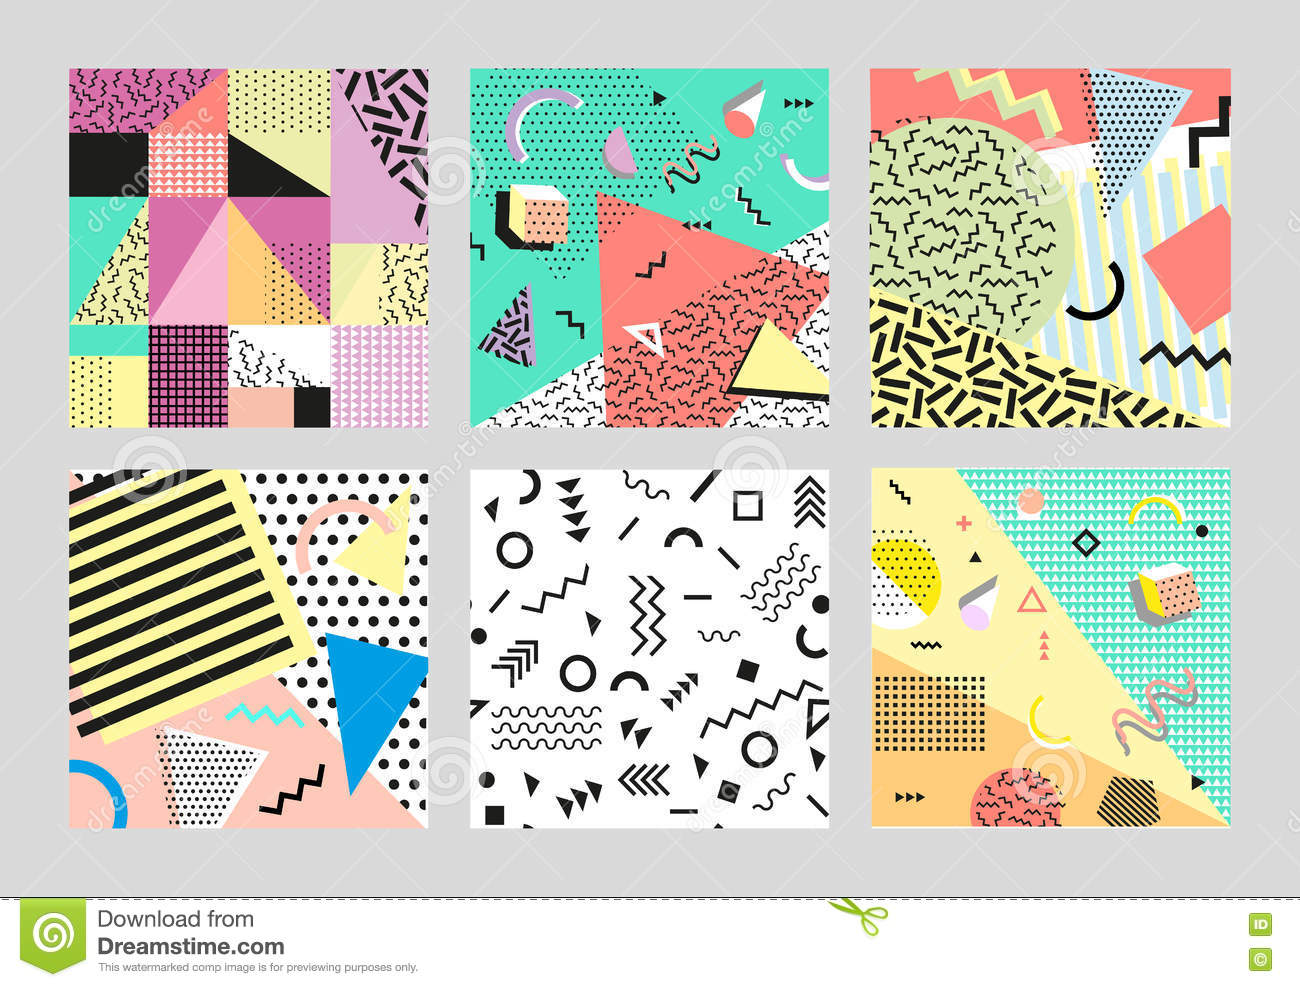 Elements of a poster design - Trendy Geometric Elements Modern Abstract Design Poster Retro Vintage 80s Or 90s Fashion Style Memphis Cards Big Set Trendy Geometric